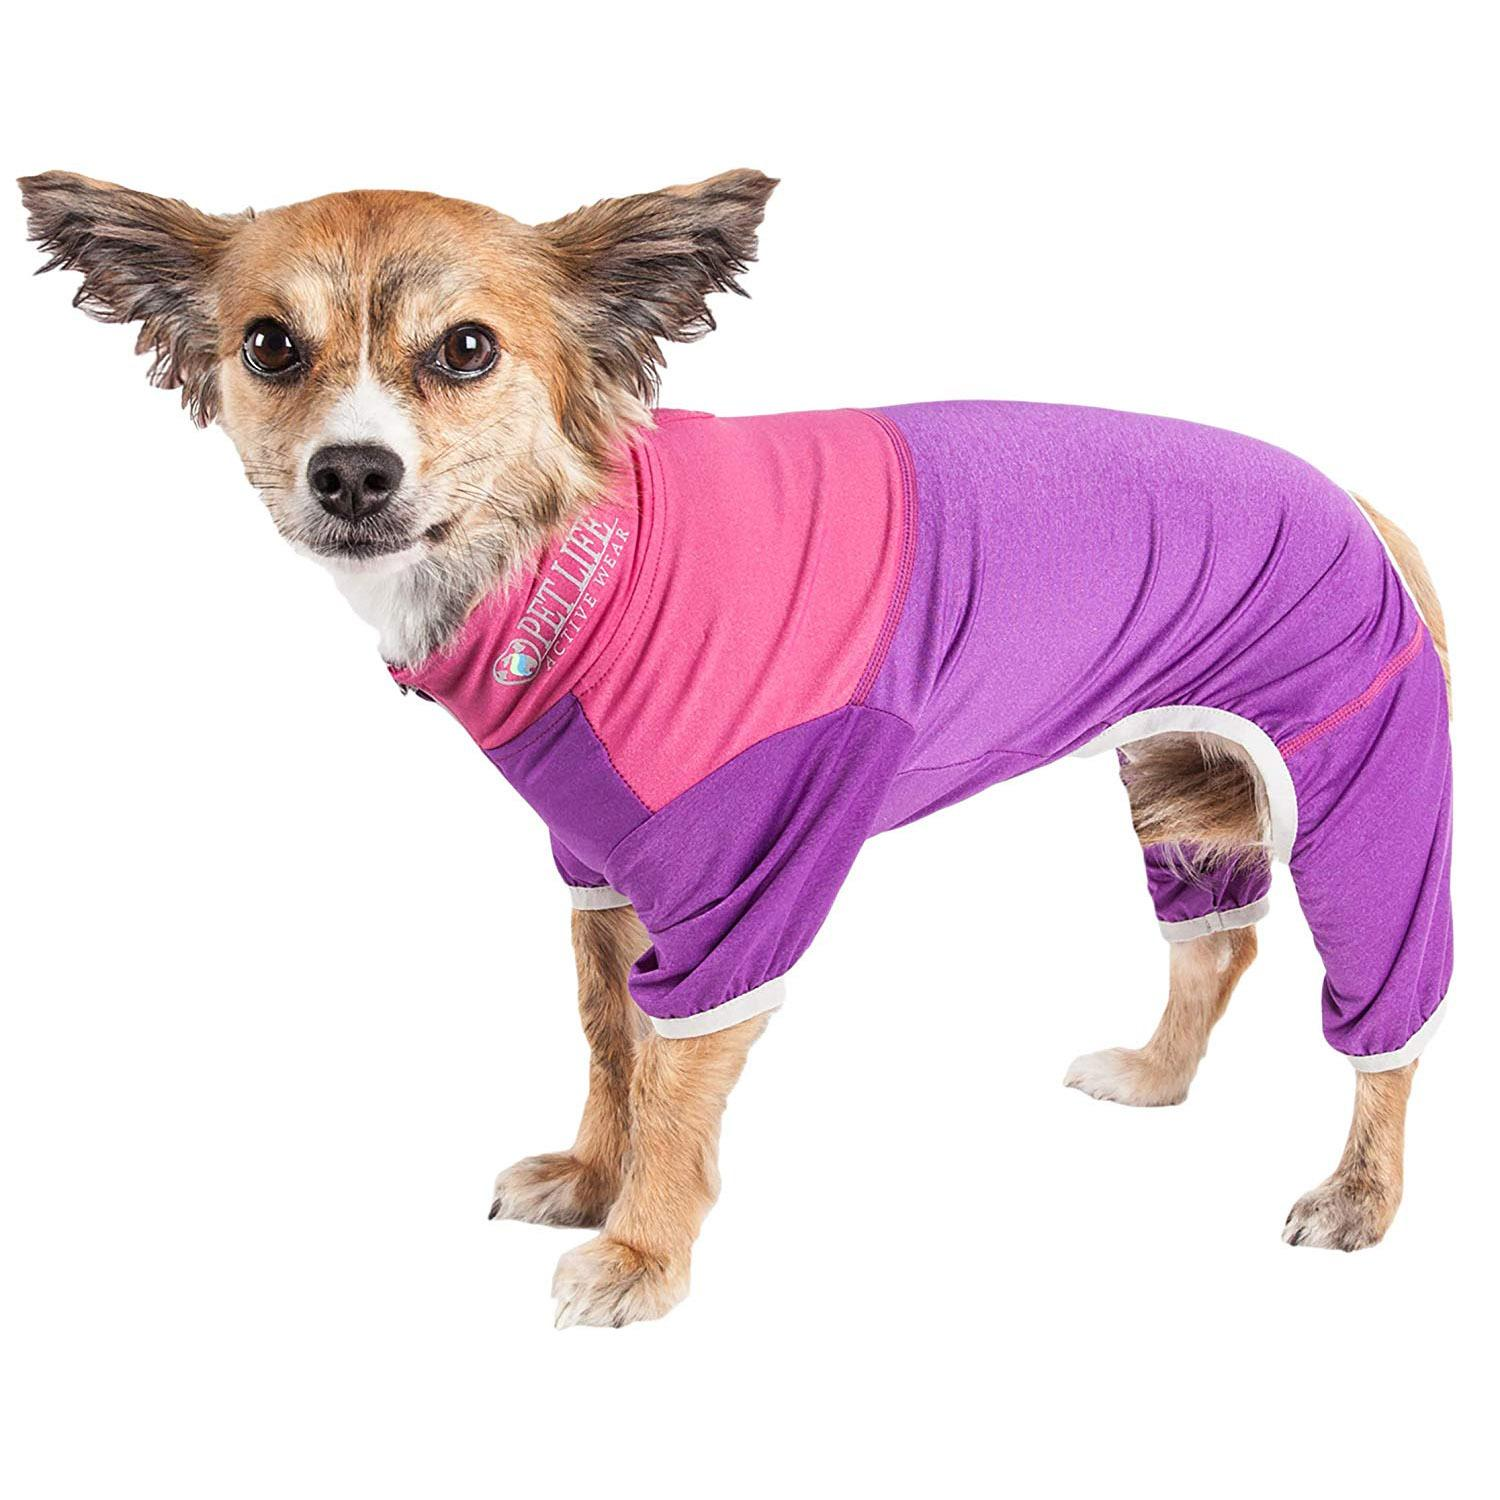 Pet Life ACTIVE 'Embarker' Performance Full-Body Dog Warm Up Suit - Lavender and Pink